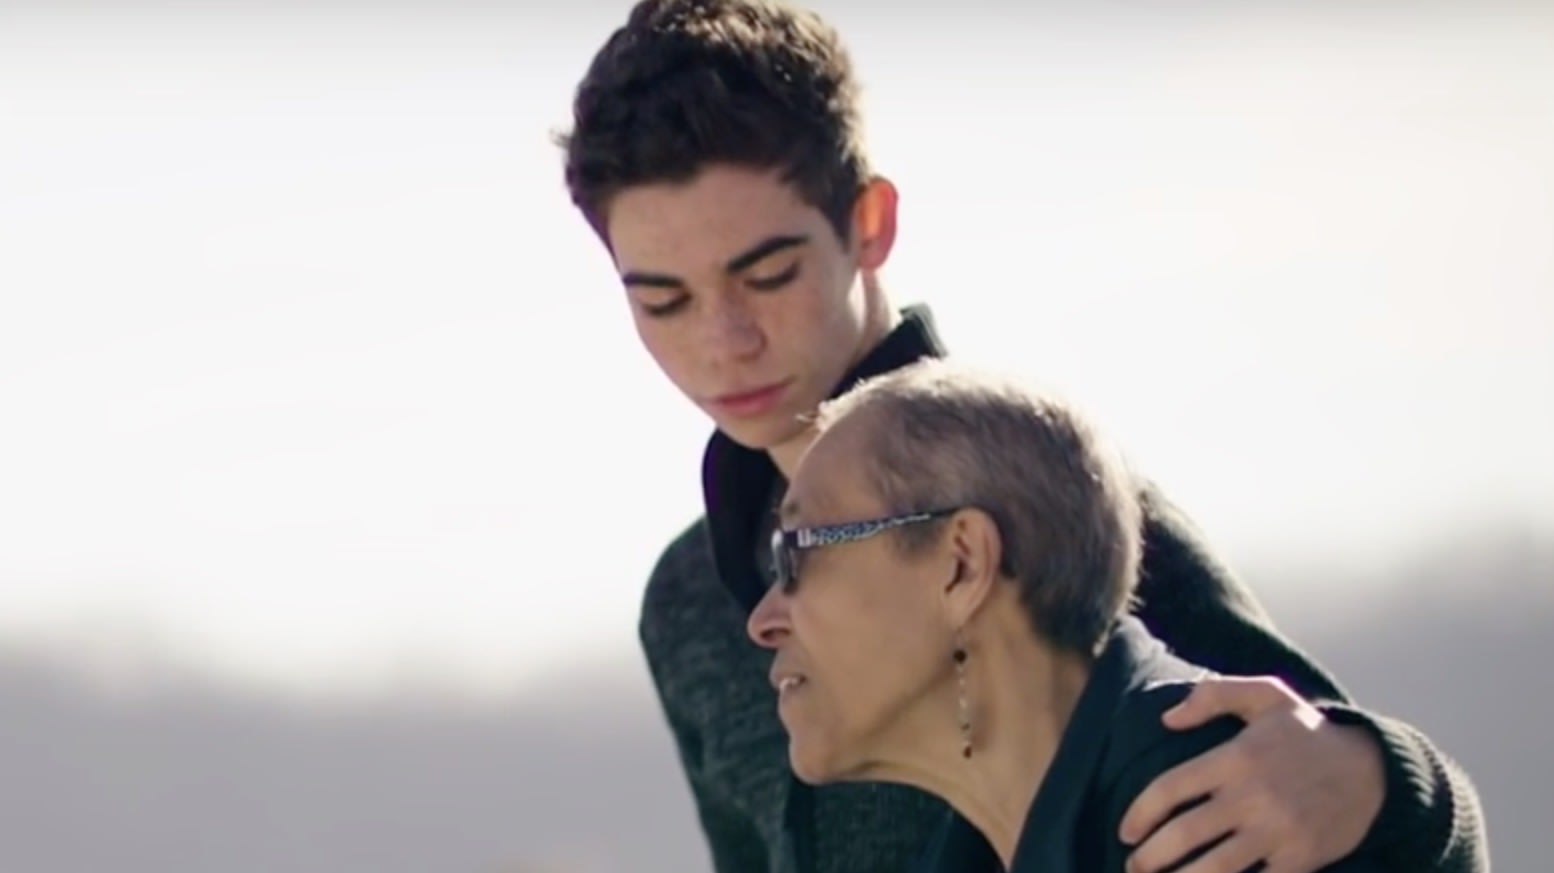 Disney actor Cameron Boyce honored by 'Jessie' cast after death